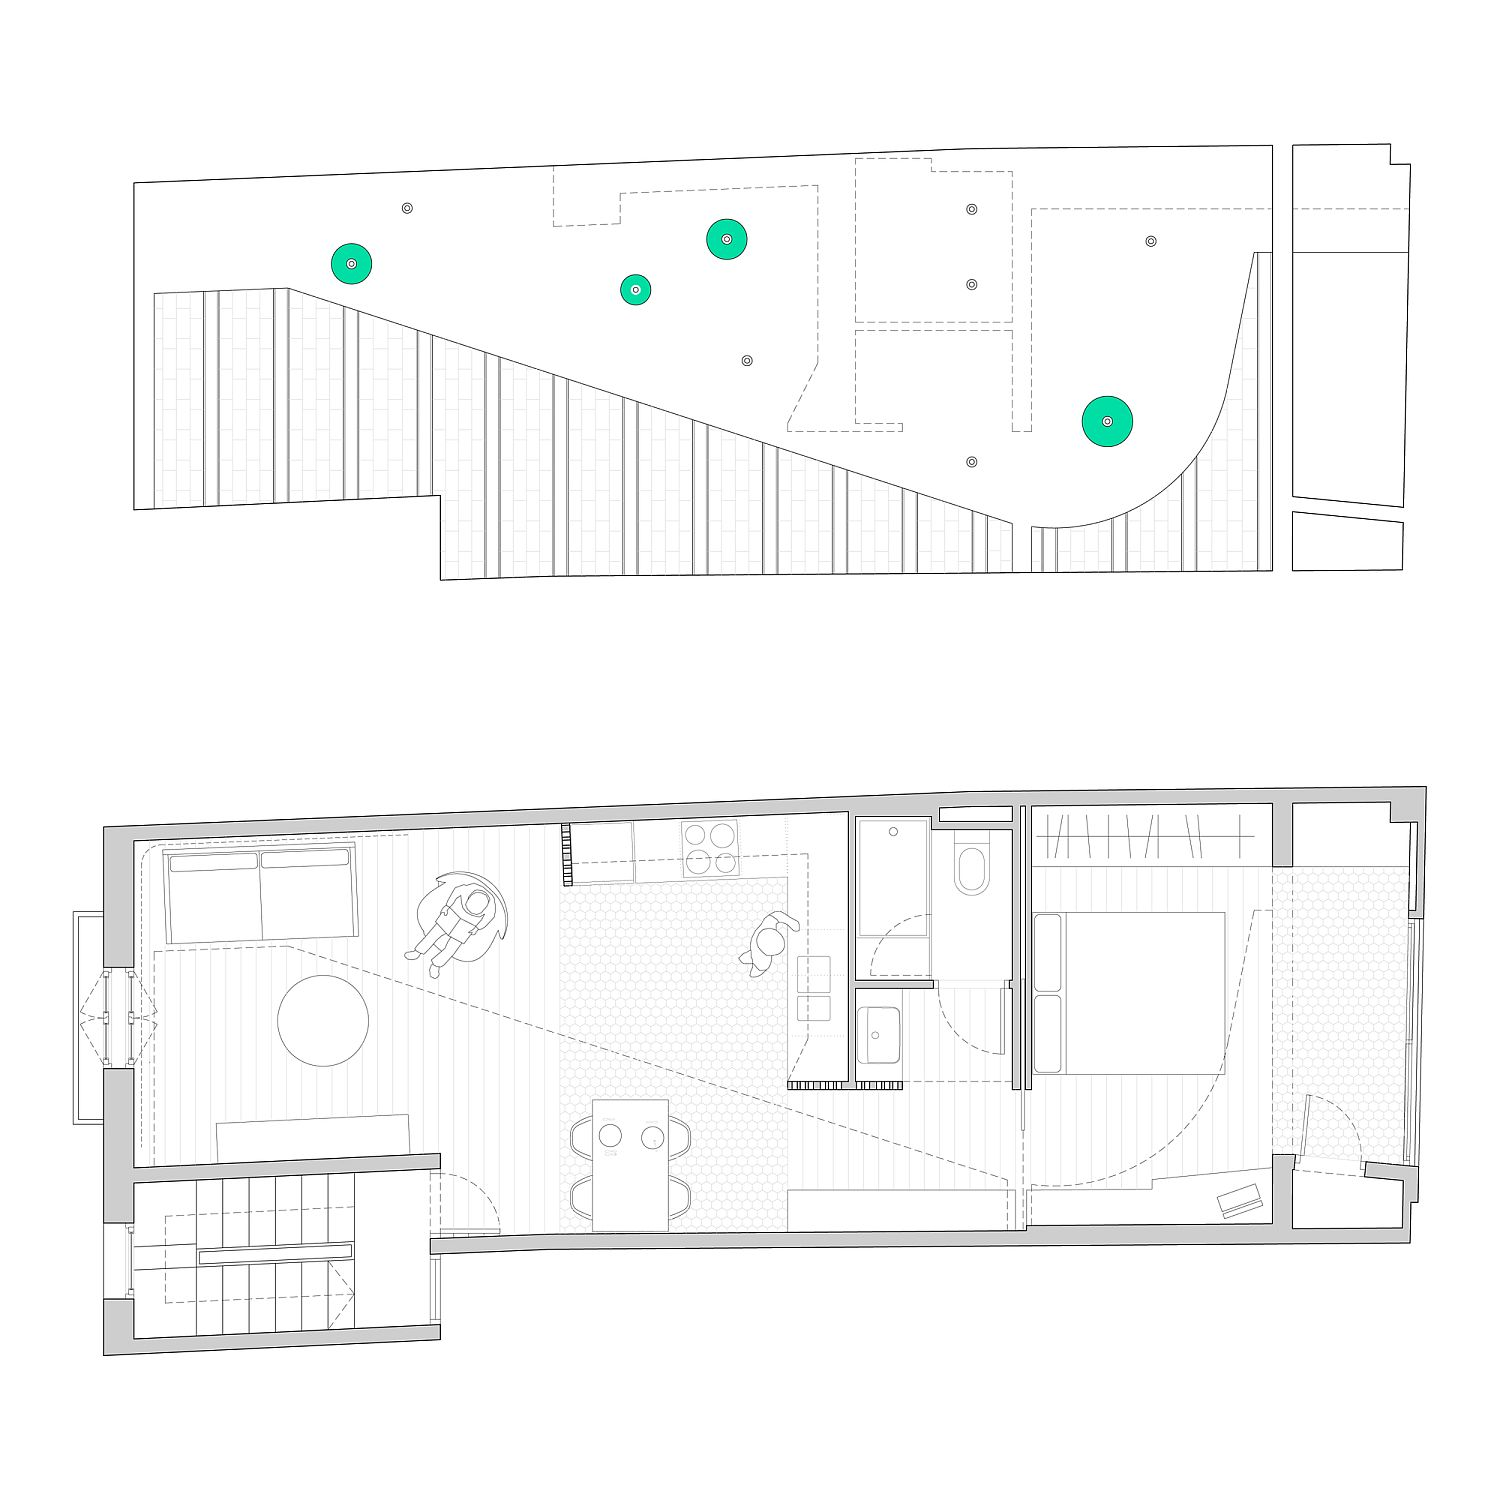 Floor plan of Laia House in Barcelona